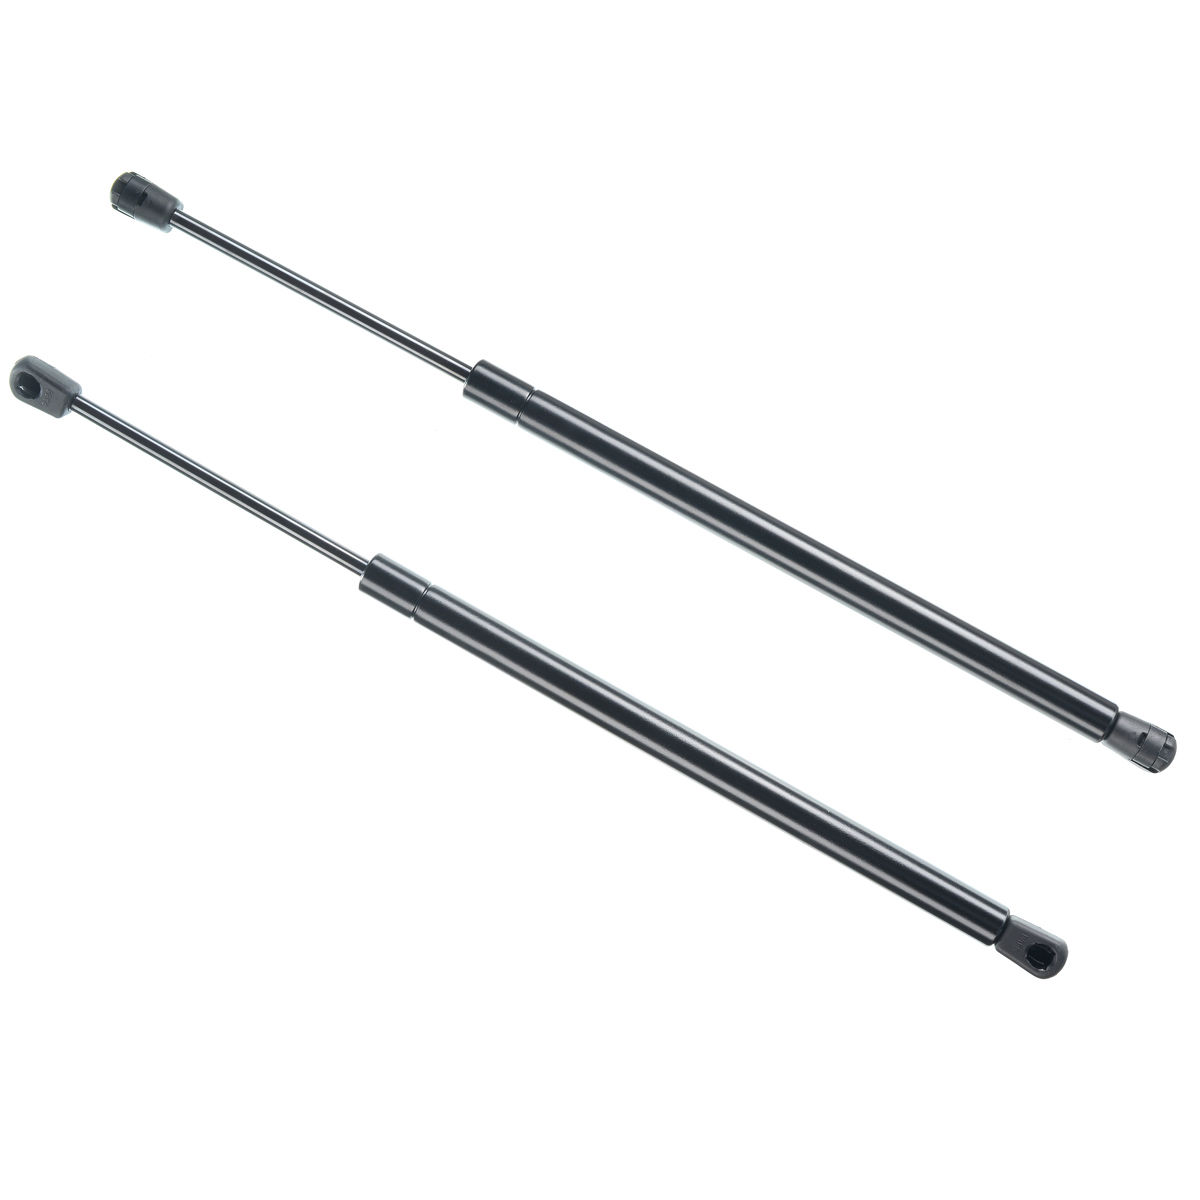 2 Pcs Rear Window Lift Support Struts For Ford Expedition